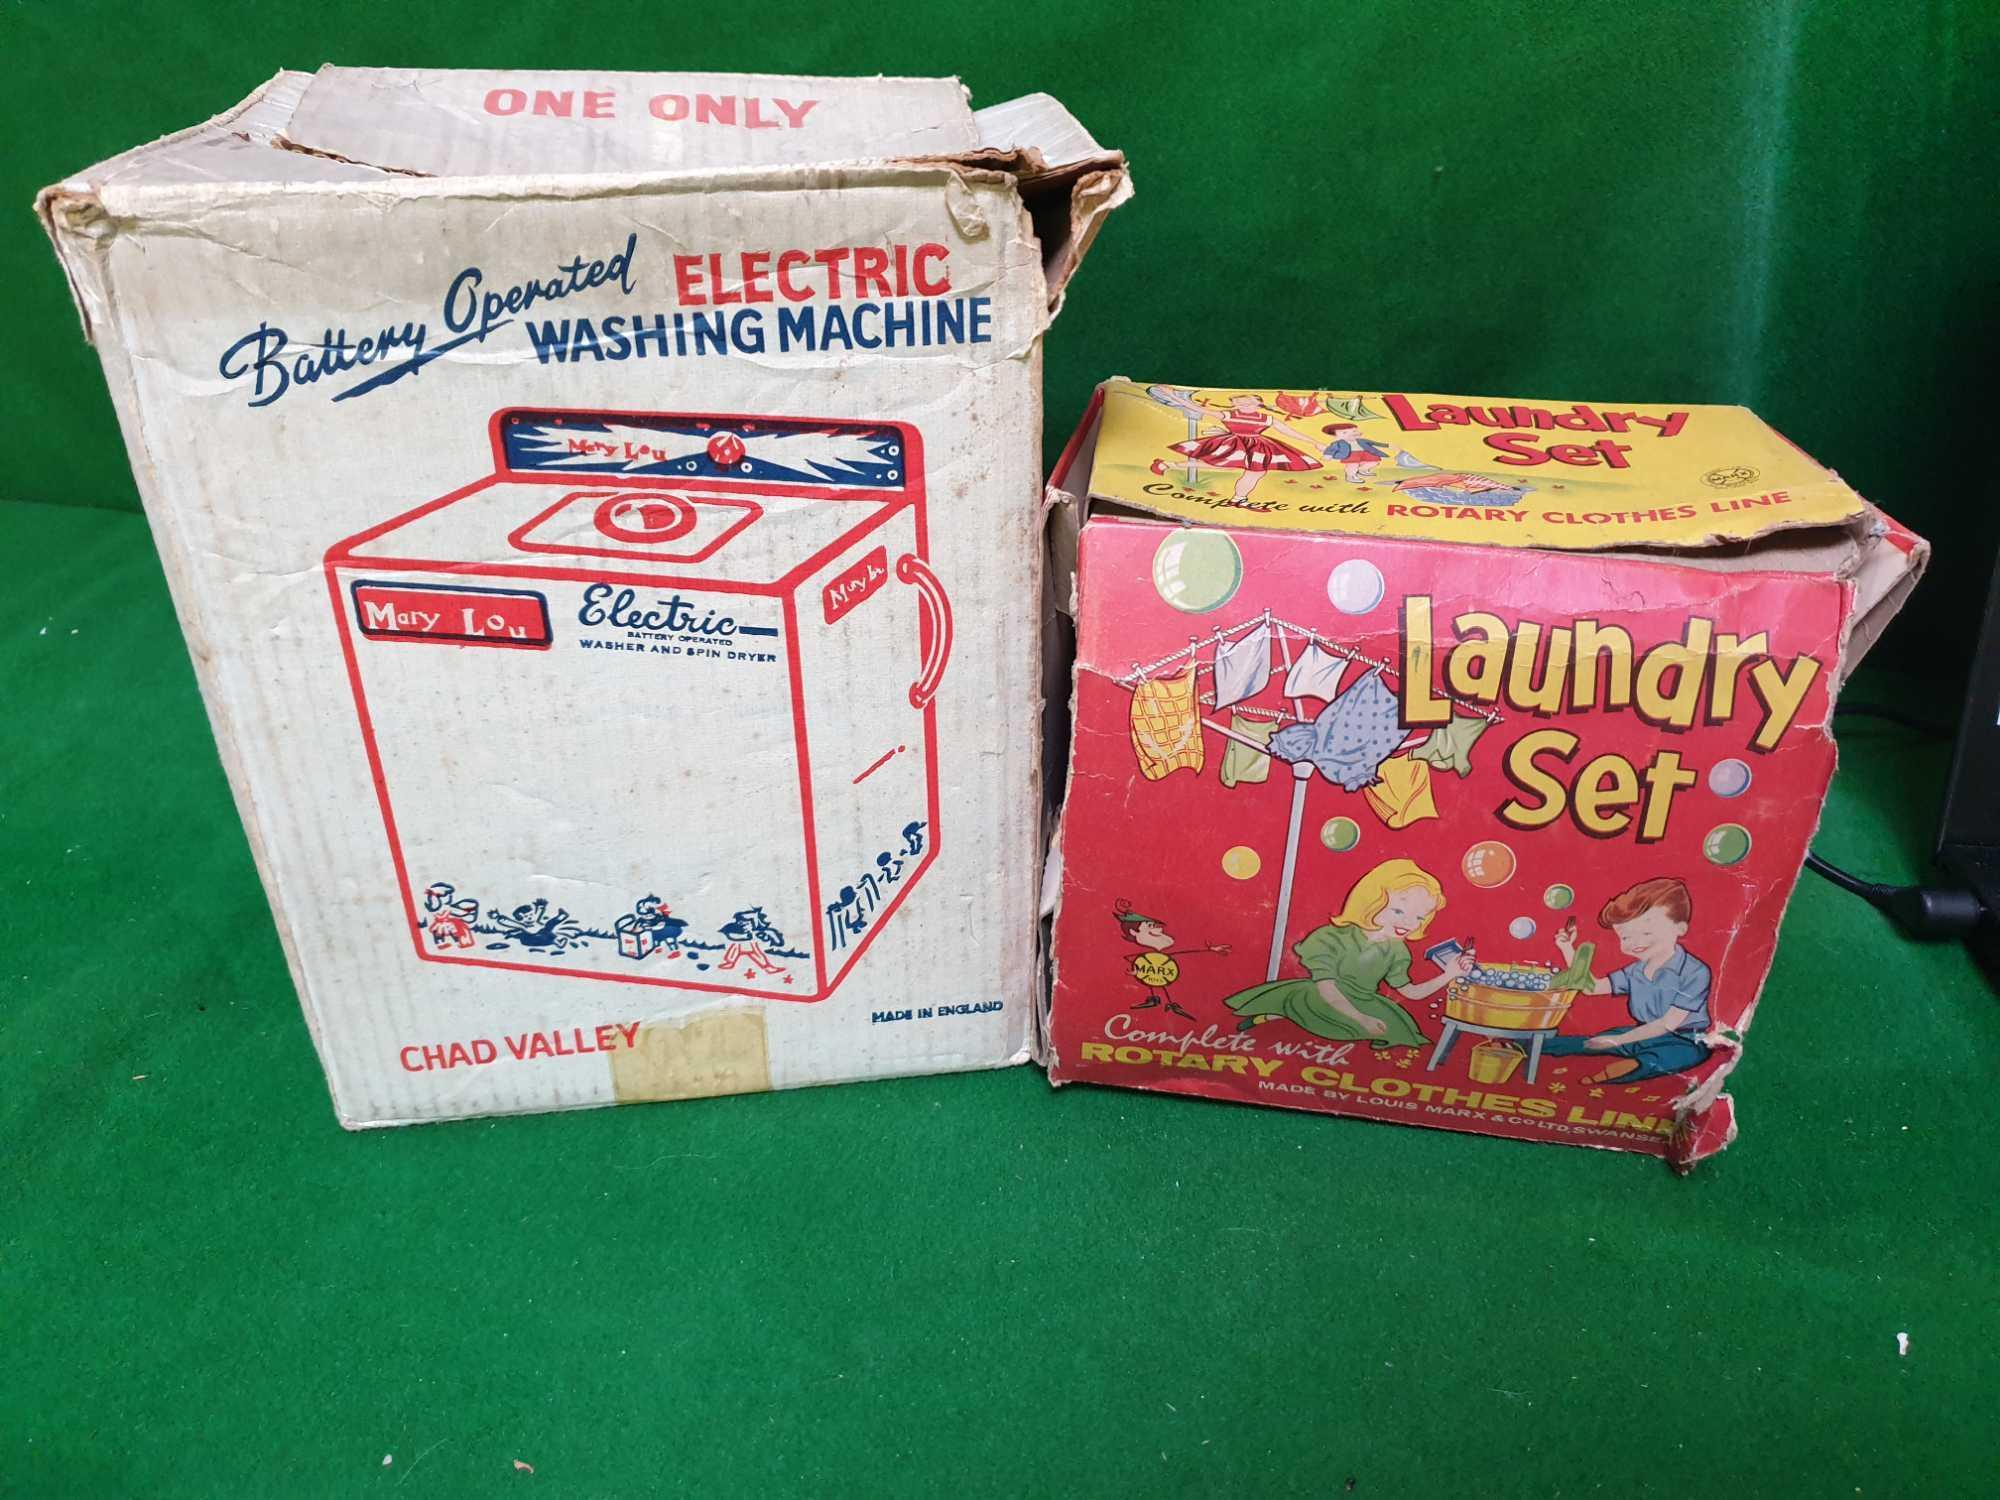 2 X Domestic Toys Comprising Of Chad Valley Mary Lou Electric Vintage Metal Toy Washing Machine With